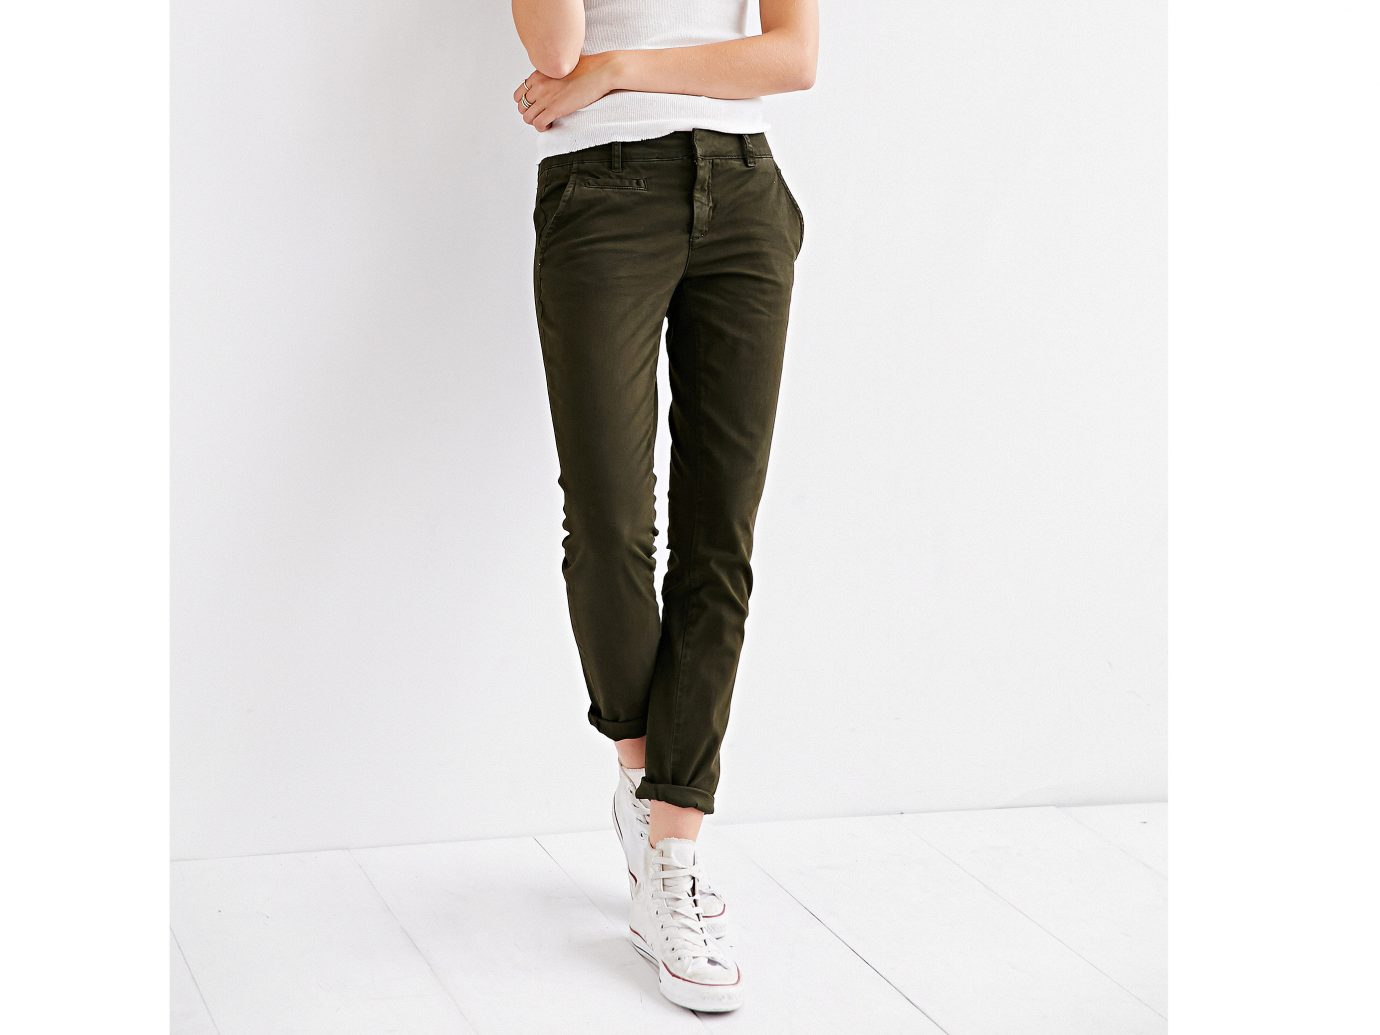 Style + Design person clothing jeans trouser man denim standing trousers pocket sleeve abdomen human body textile posing